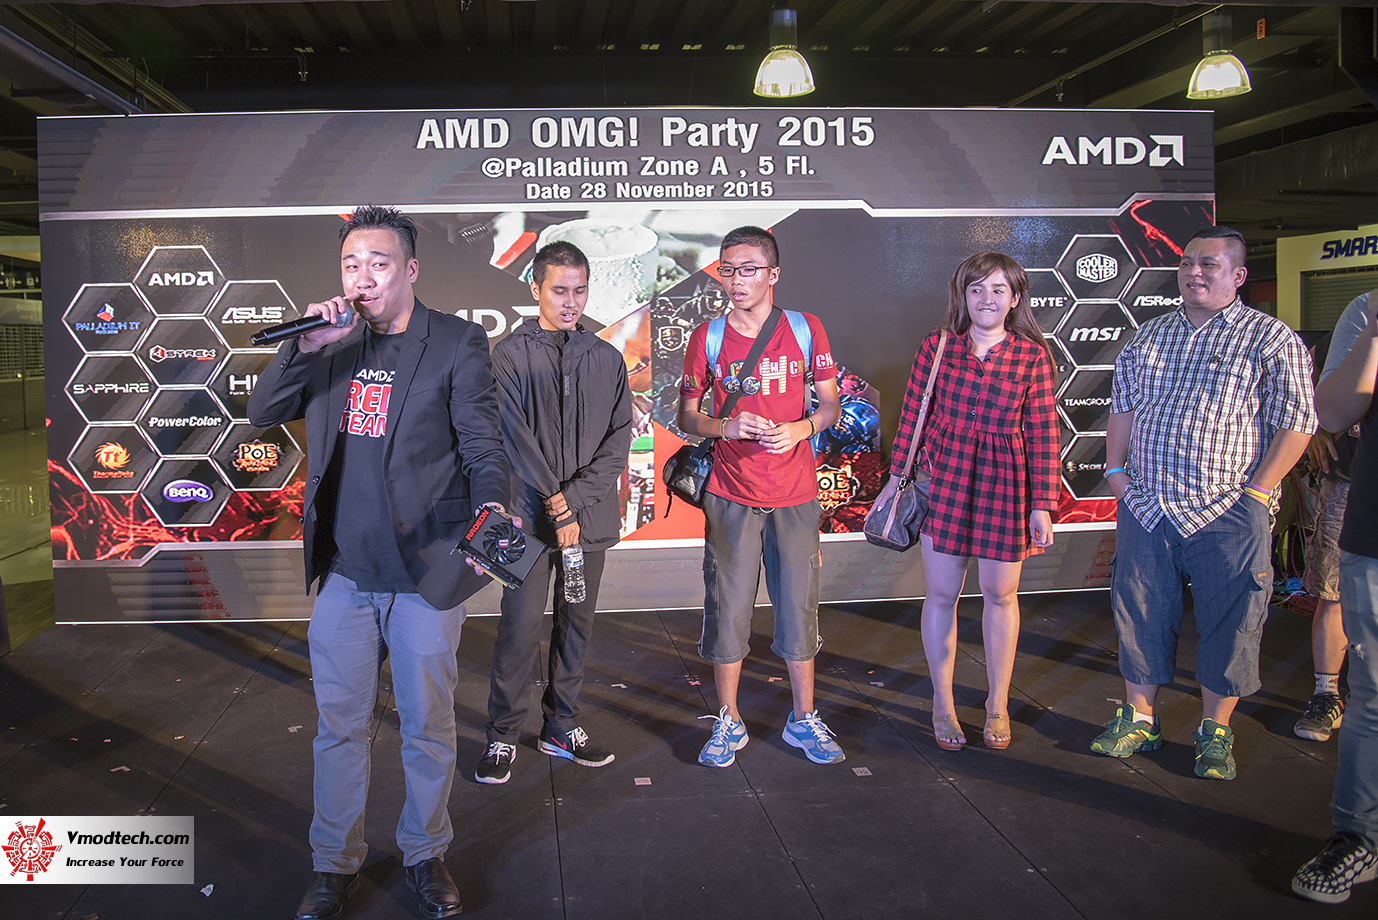 dsc 3244 AMD OMG! Party 2015 (AMD Overclock Modding Gaming Party 2015)